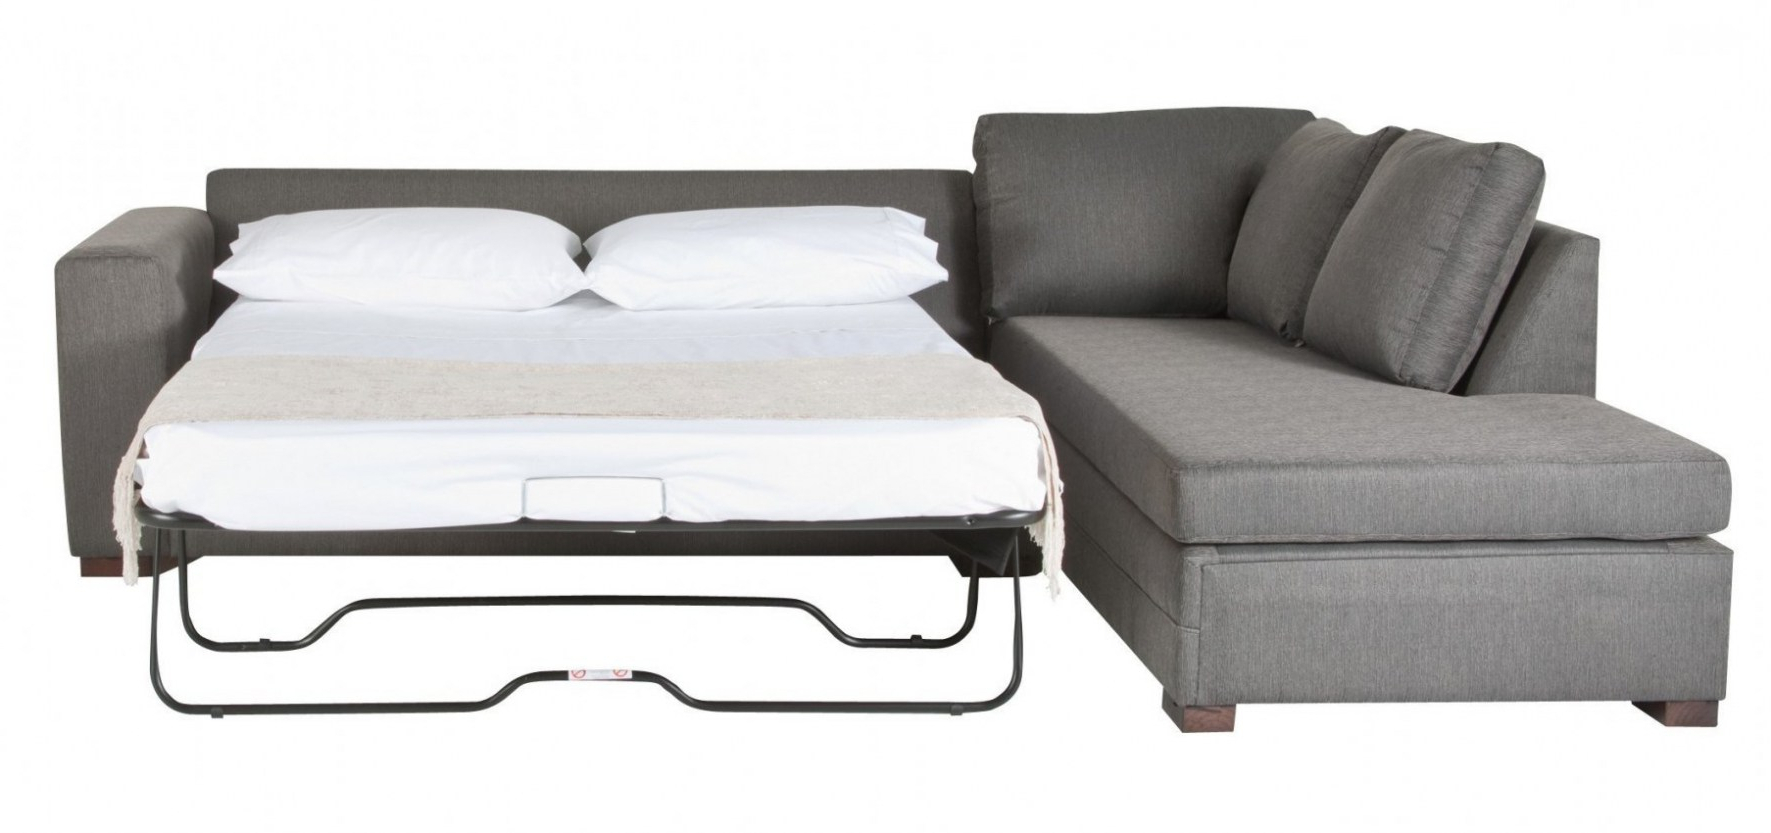 Trendy Floor Smallpertaining To Queen Size Sleeper Sectional Bedroom Pull Regarding Aspen 2 Piece Sleeper Sectionals With Laf Chaise (View 19 of 20)